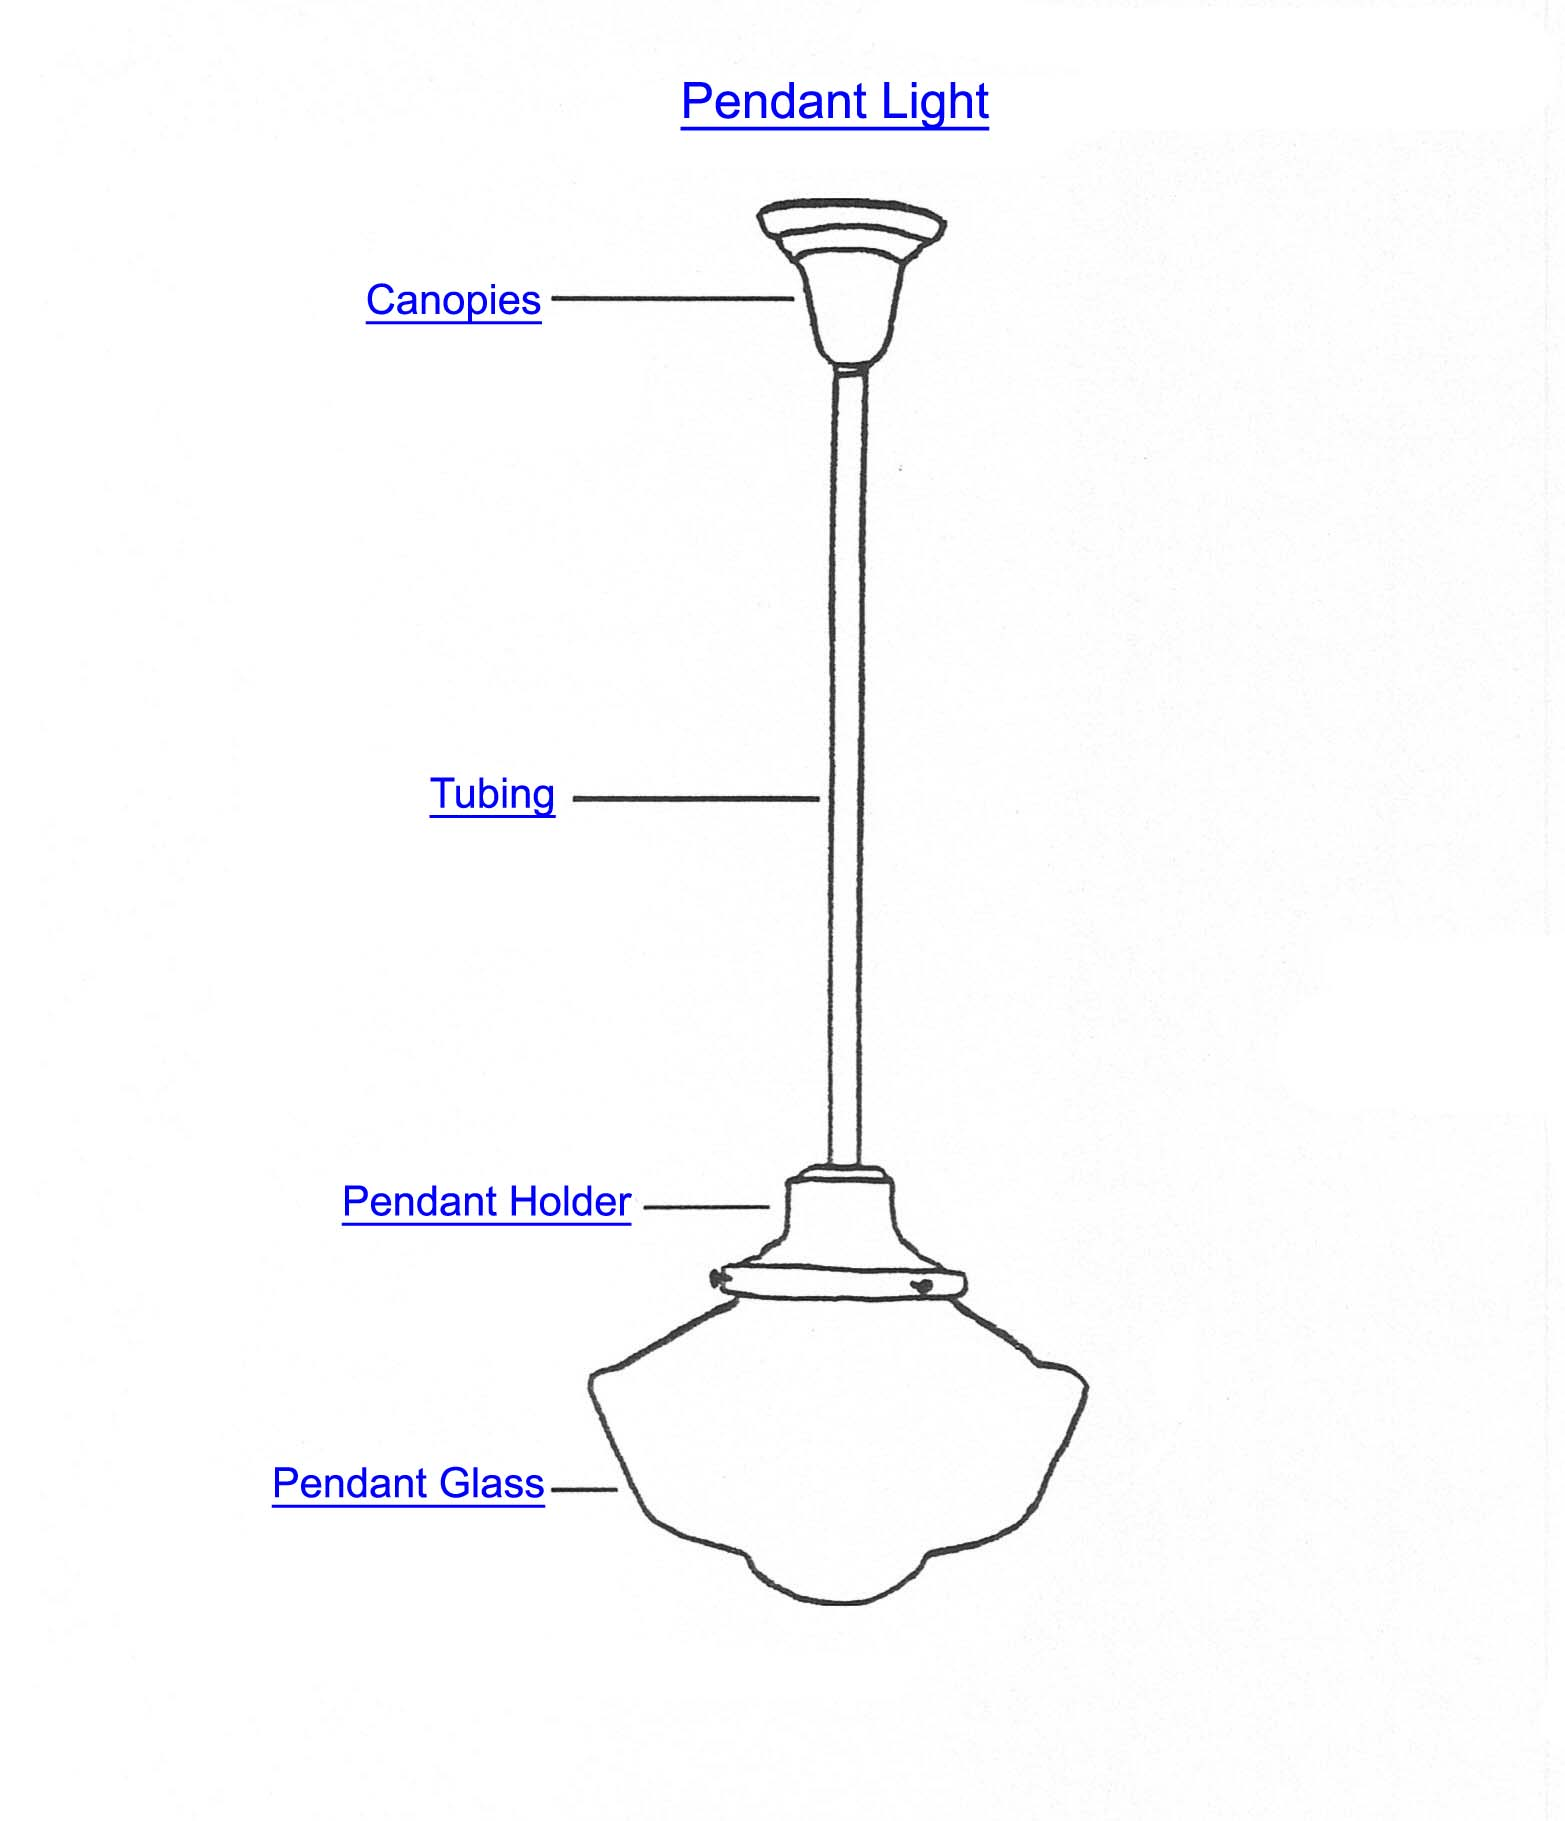 Pendant lighting part index